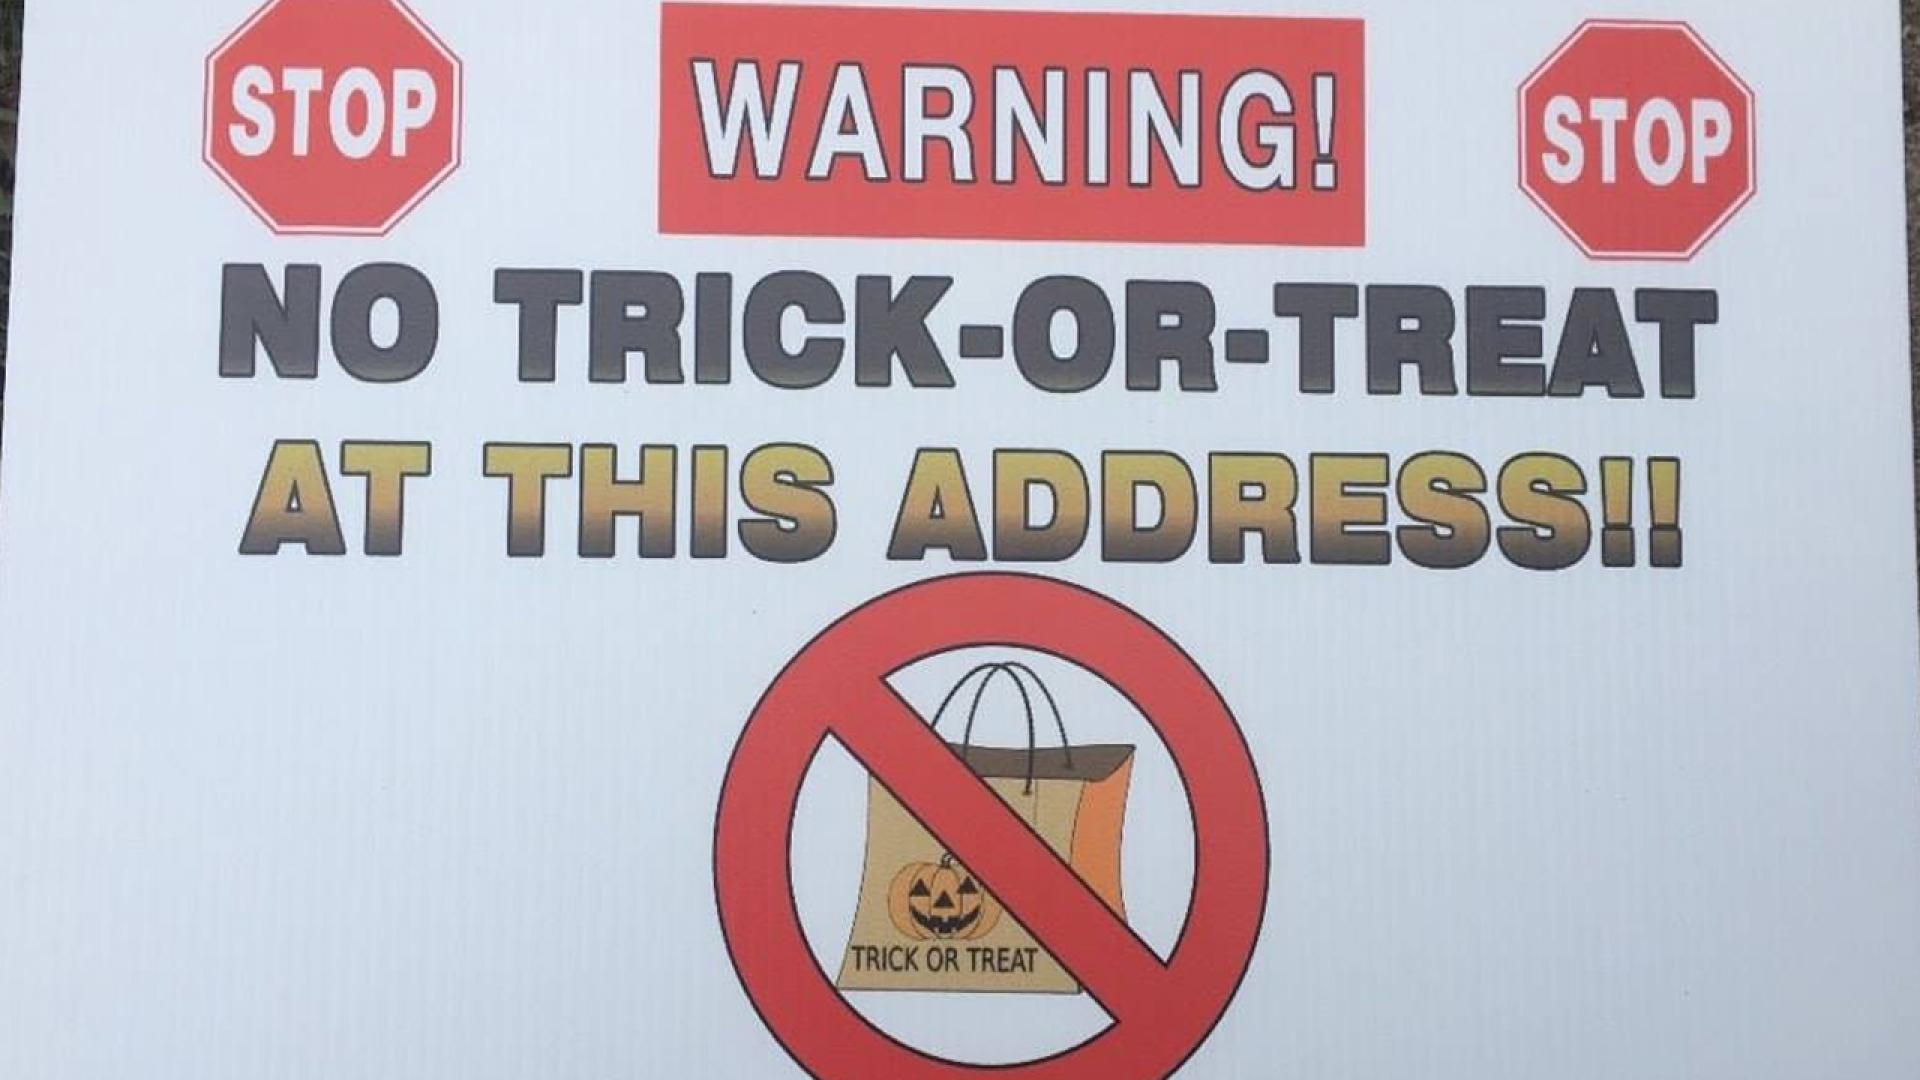 No trick or treat signs